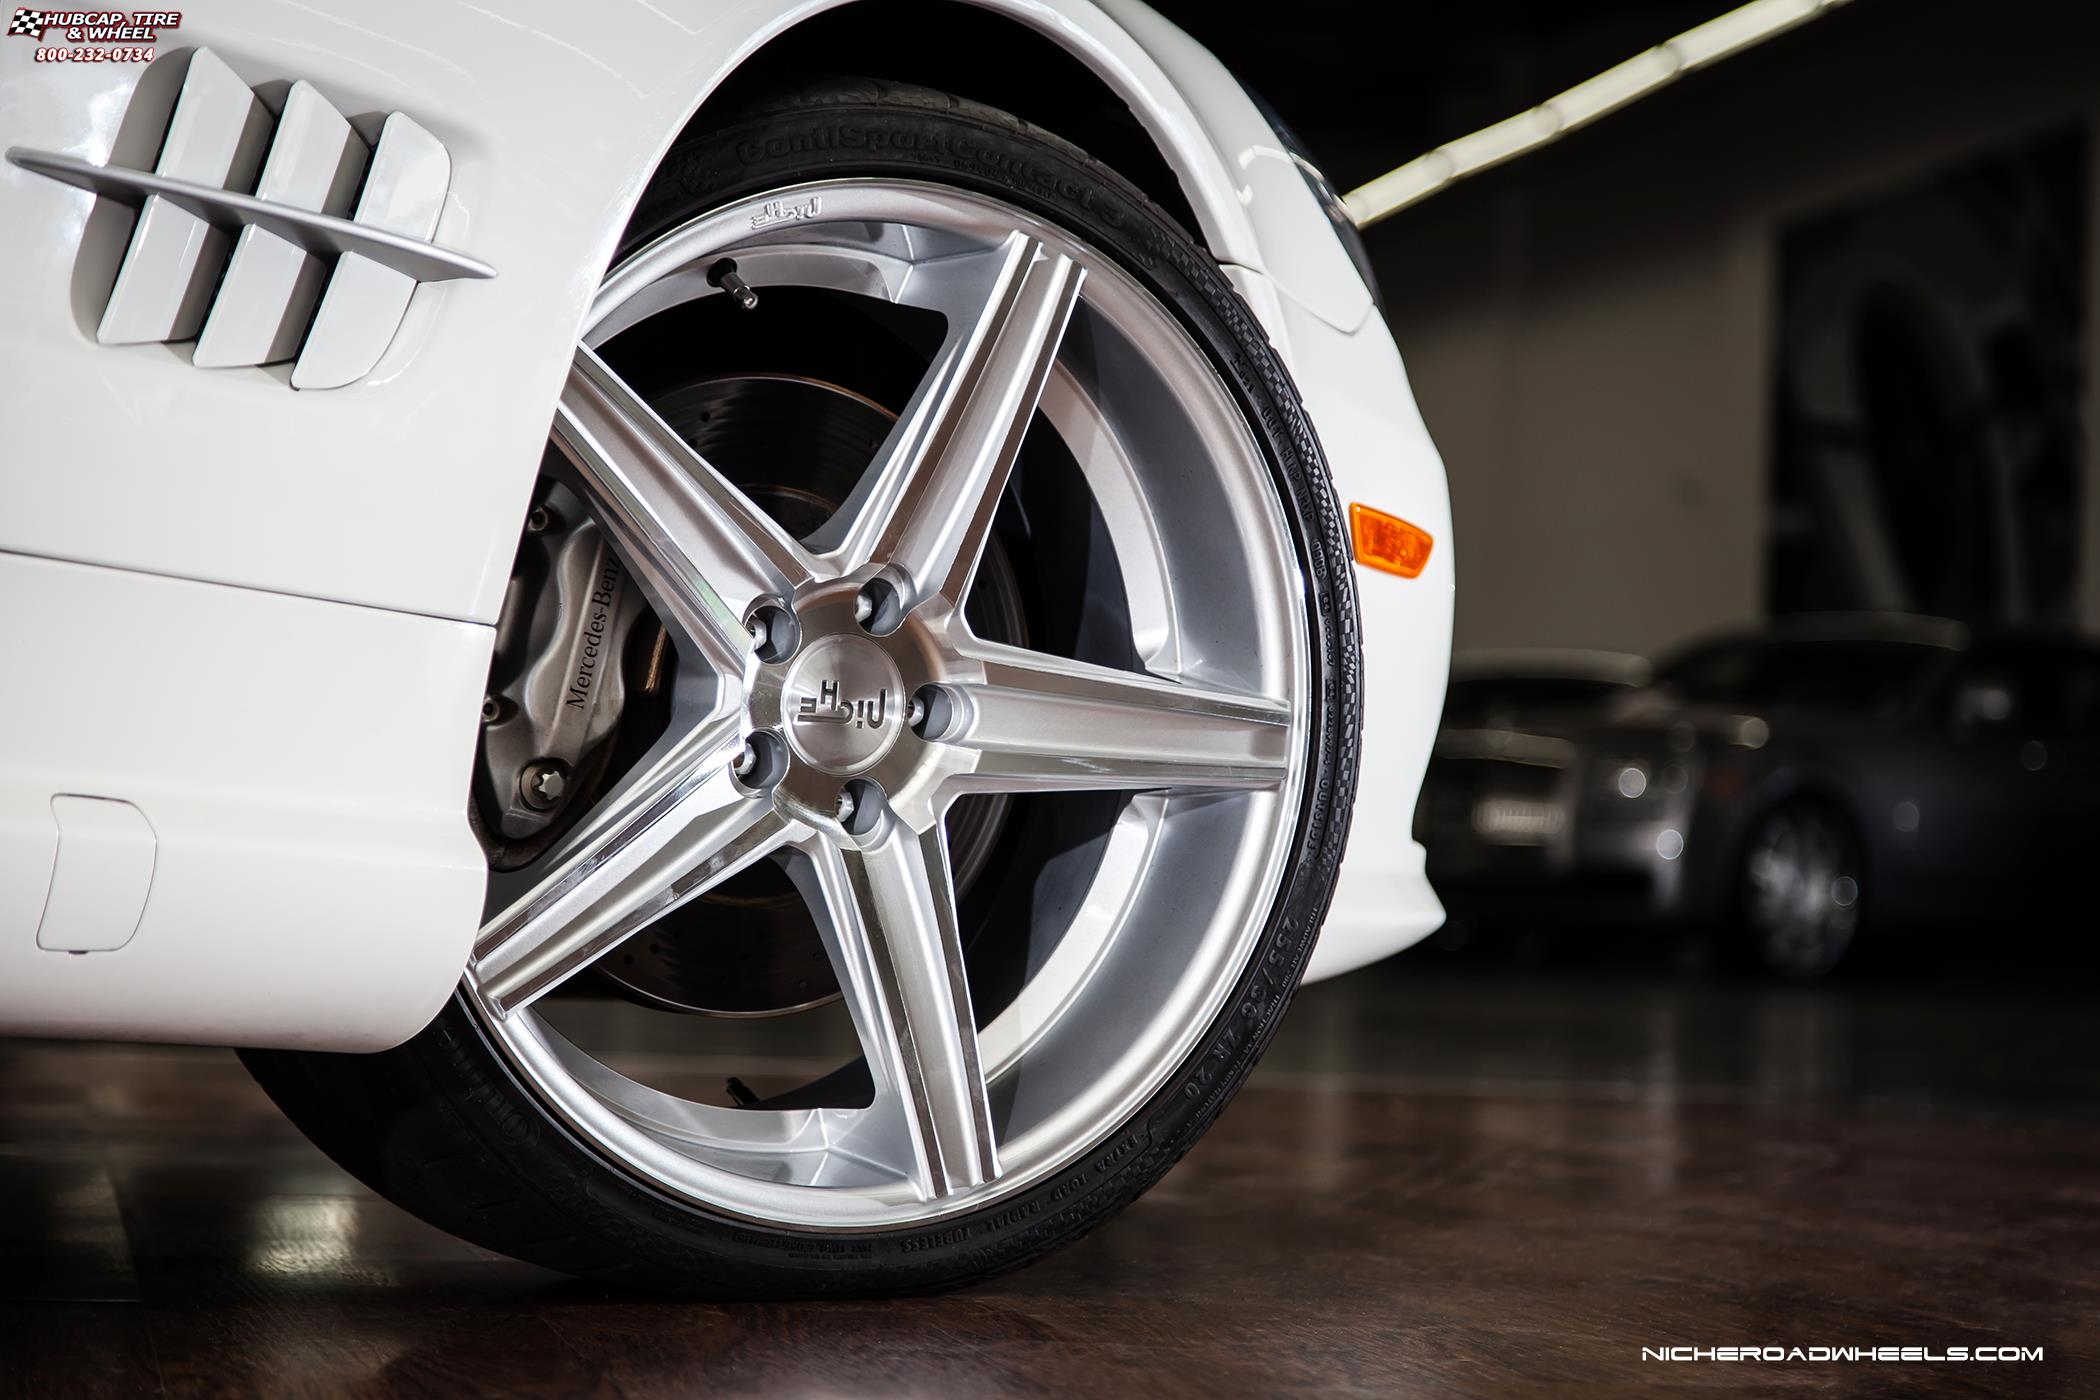 Mercedes benz sl class niche apex m126 wheels black for Mercedes benz wheel and tire protection